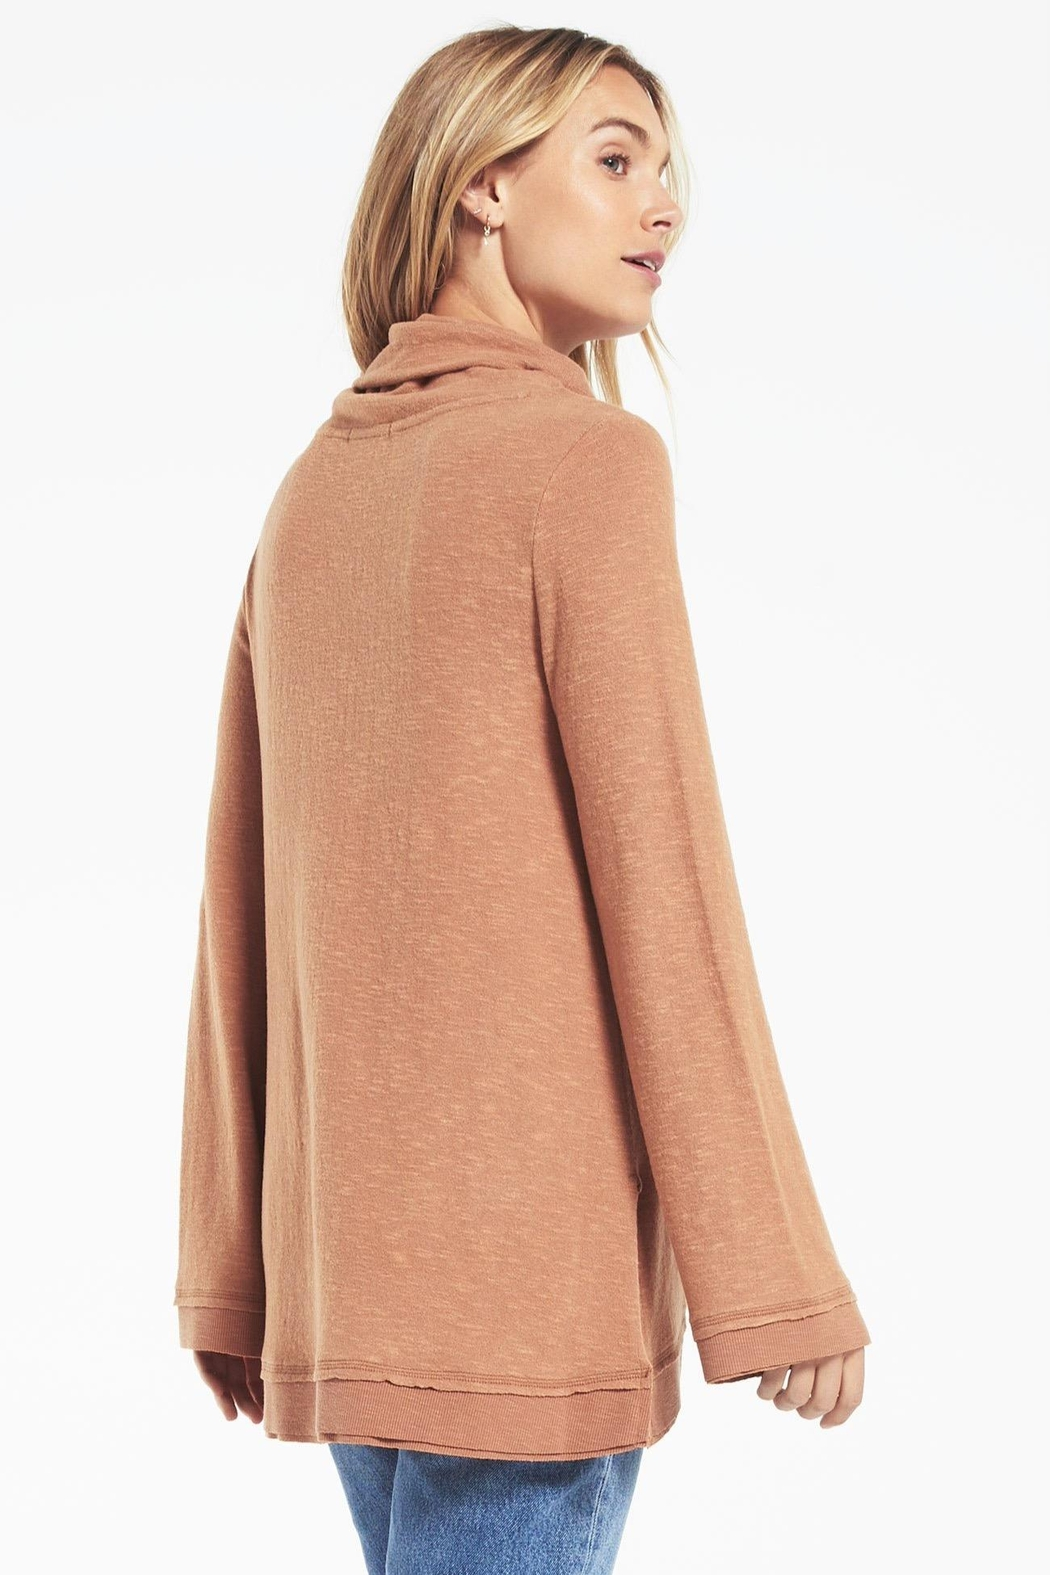 z supply Ali Cowl Sweater - Side Cropped Image